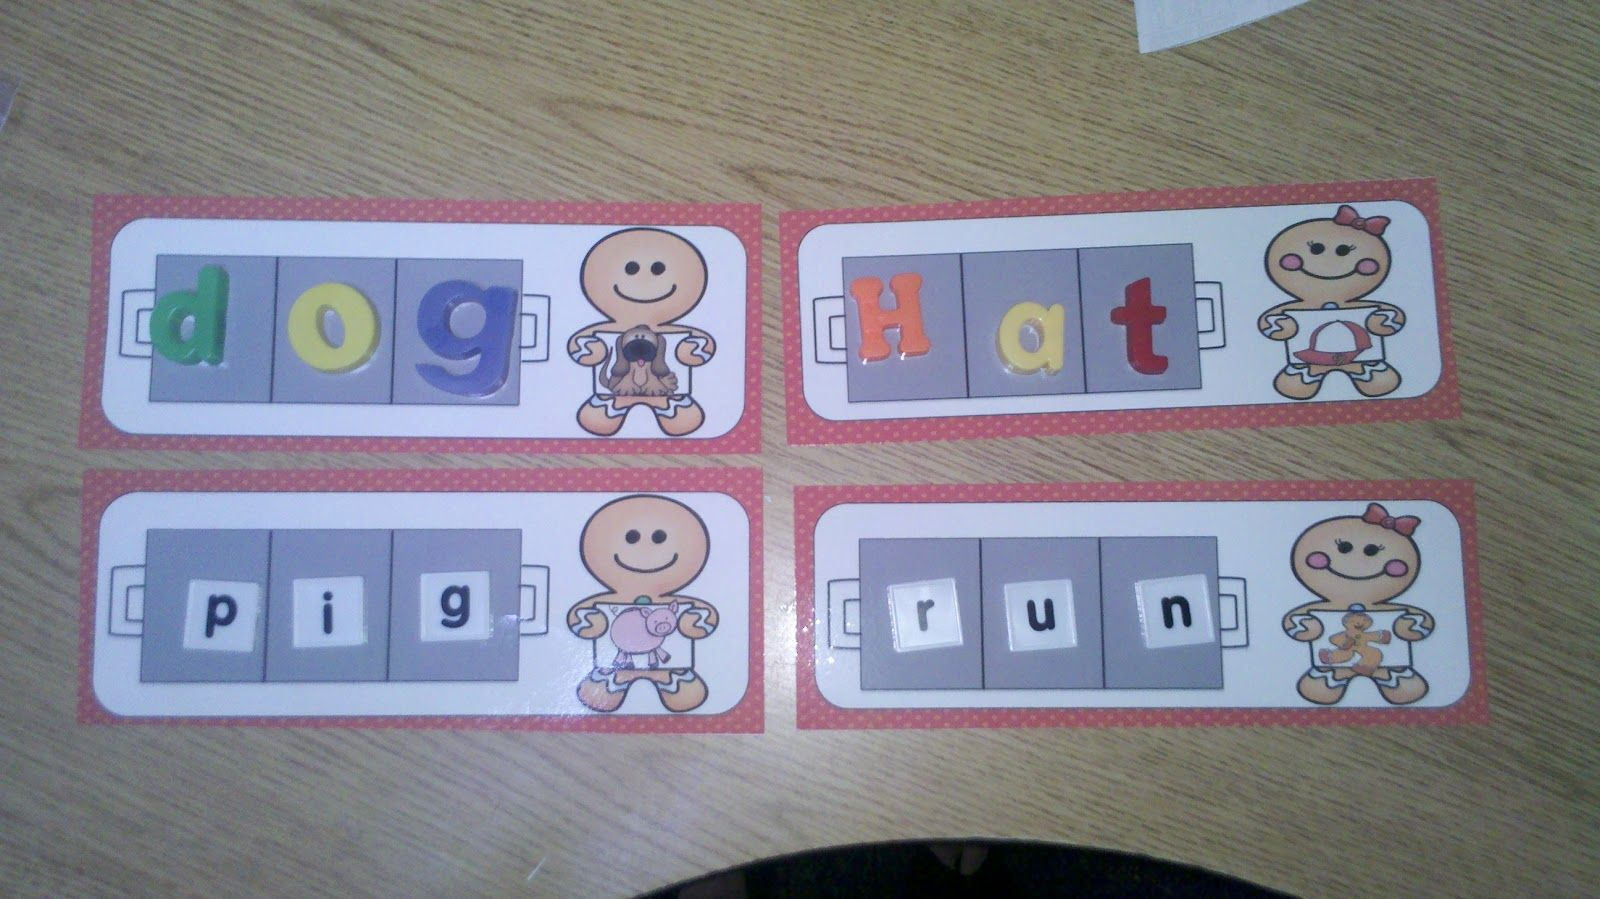 Baking Cvc Words With The Gingerbread Man By Jaimie